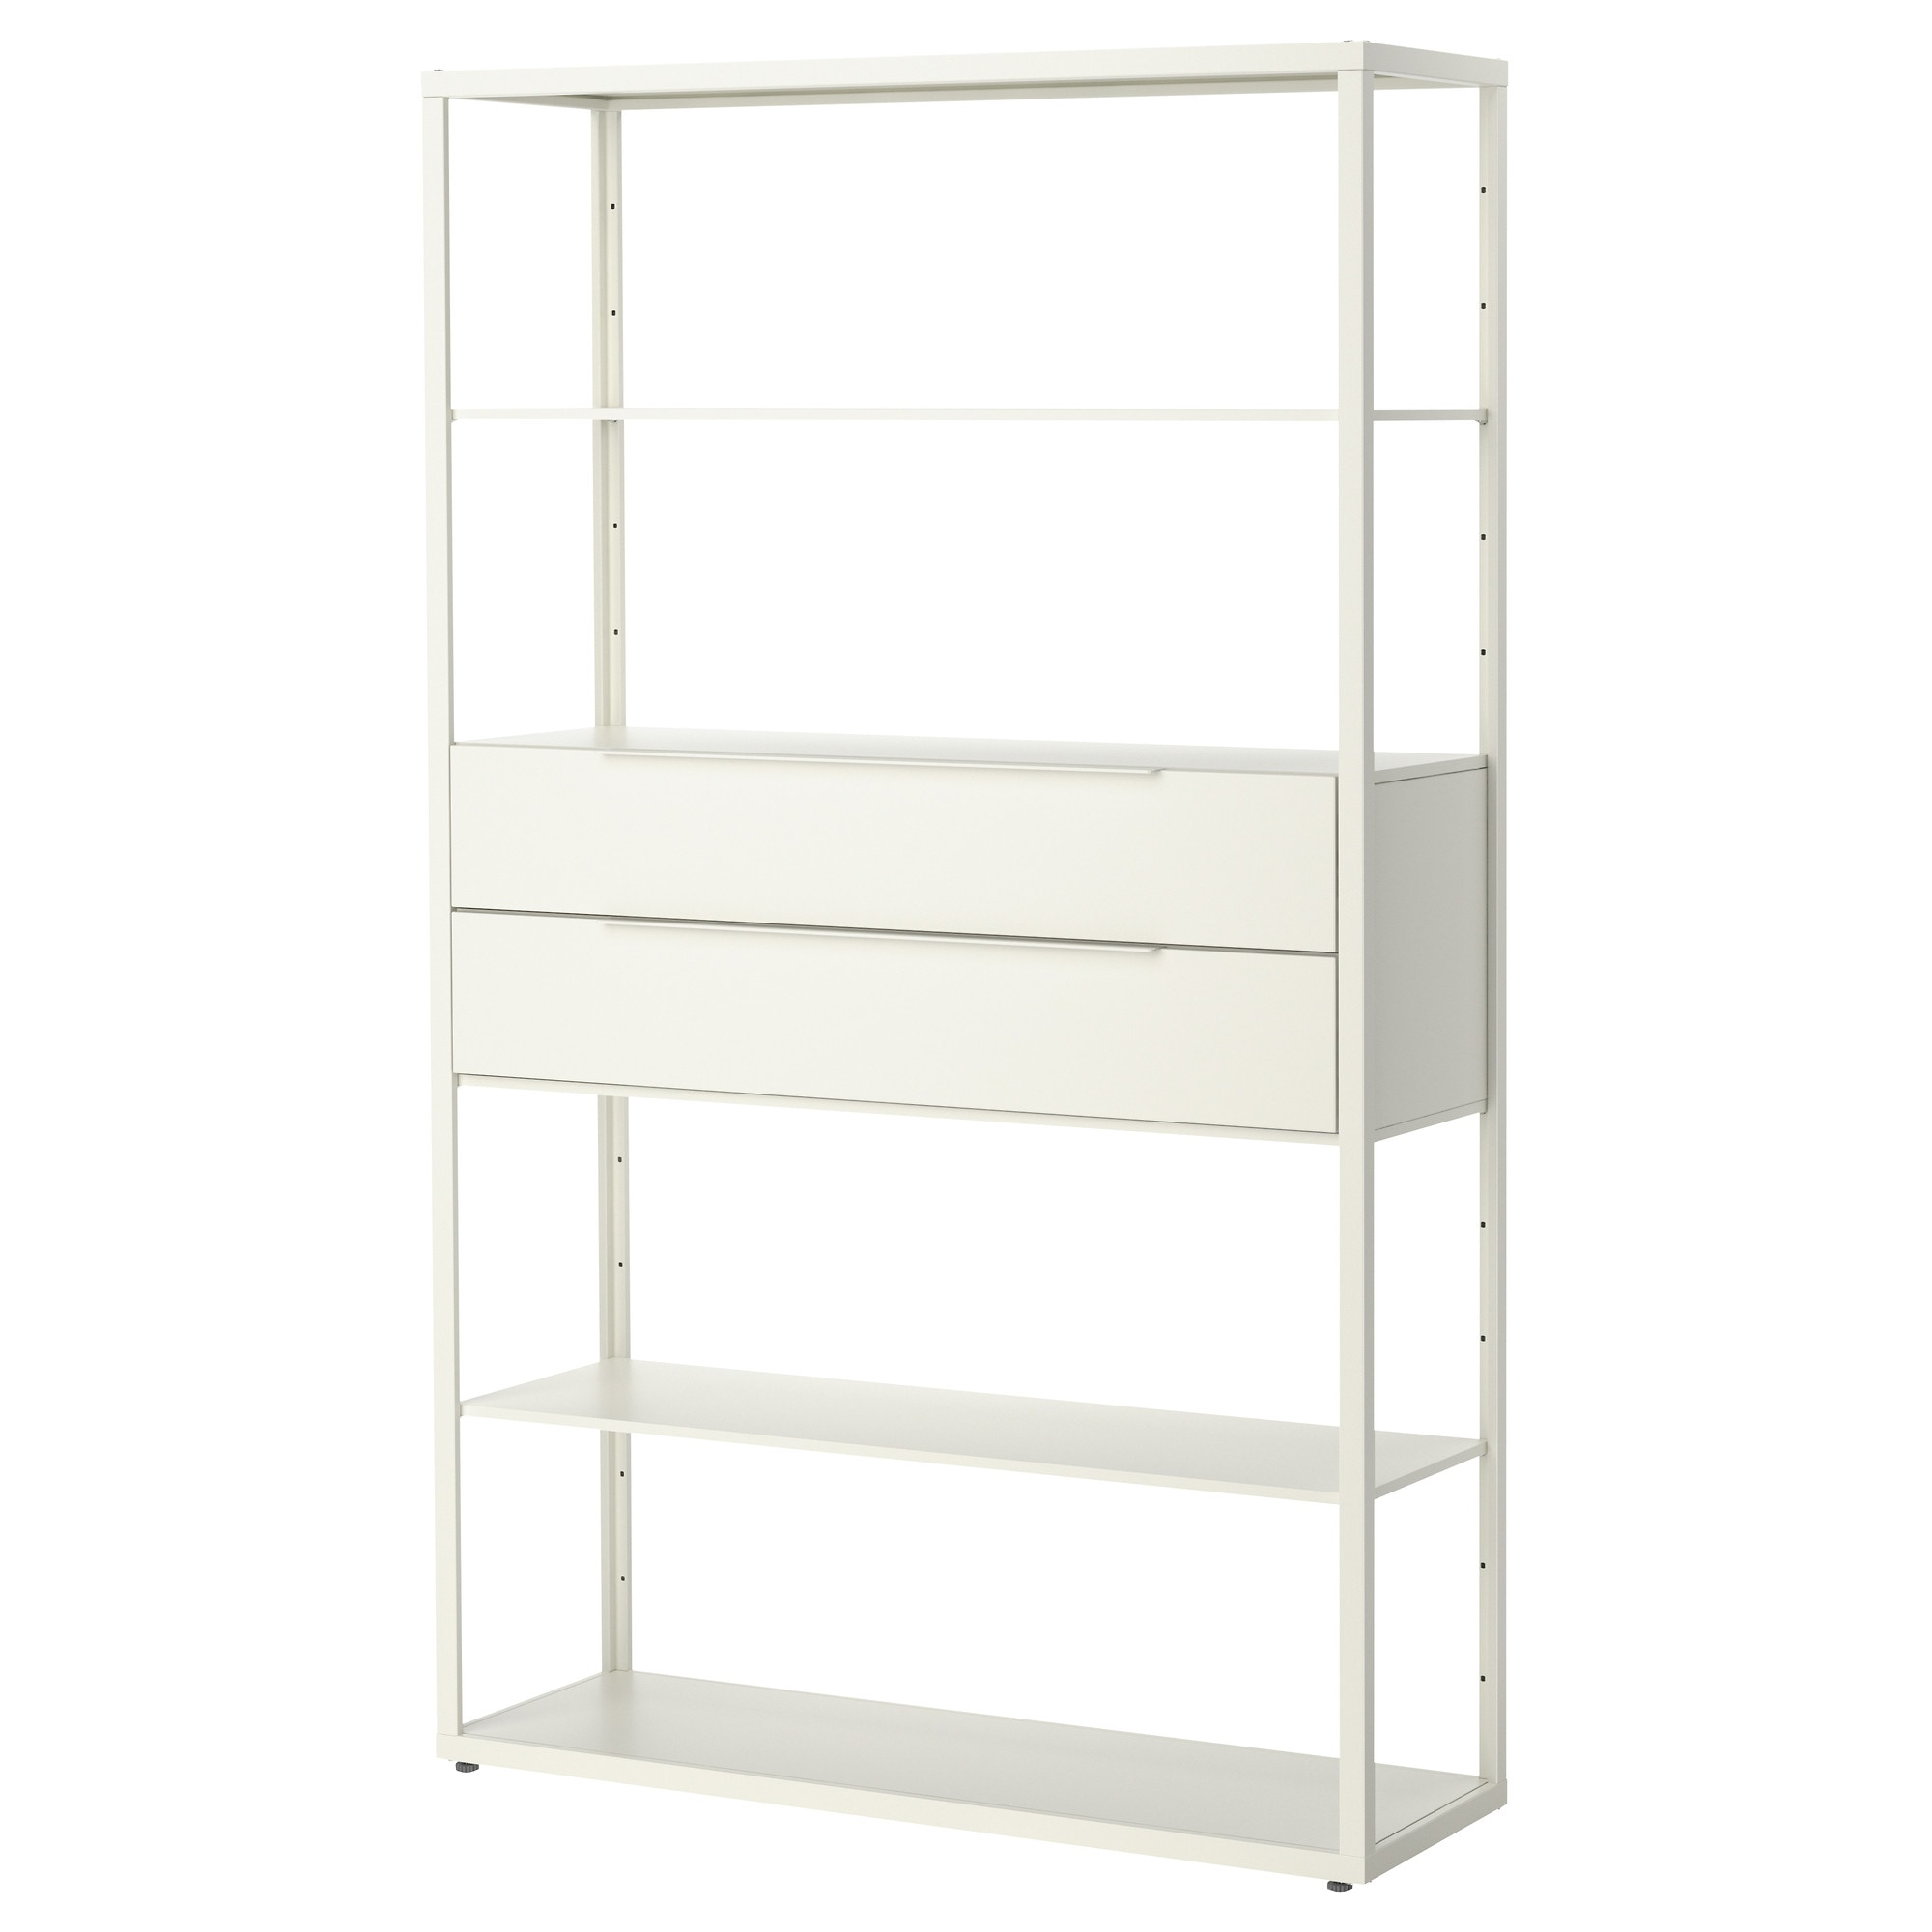 "FJ""LKINGE Shelving unit with drawers IKEA"